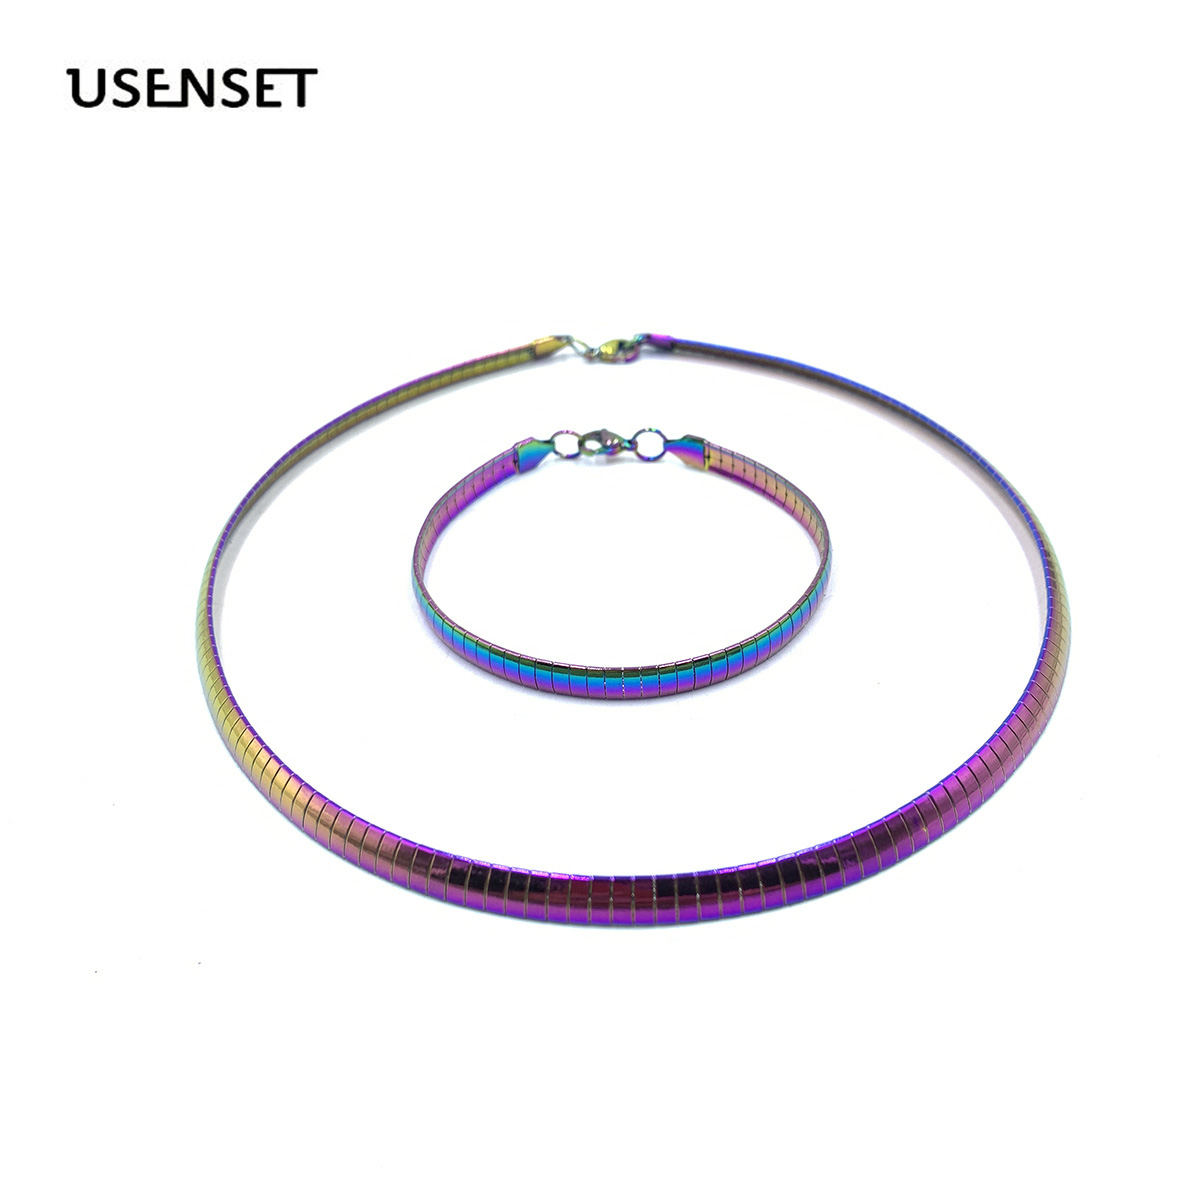 Colorful Collar Stainless Steel Necklace Women Choker Torques Jewelry 4MM 6MM 8MM  Snake Chain Bracelet Set Gifts For Girls